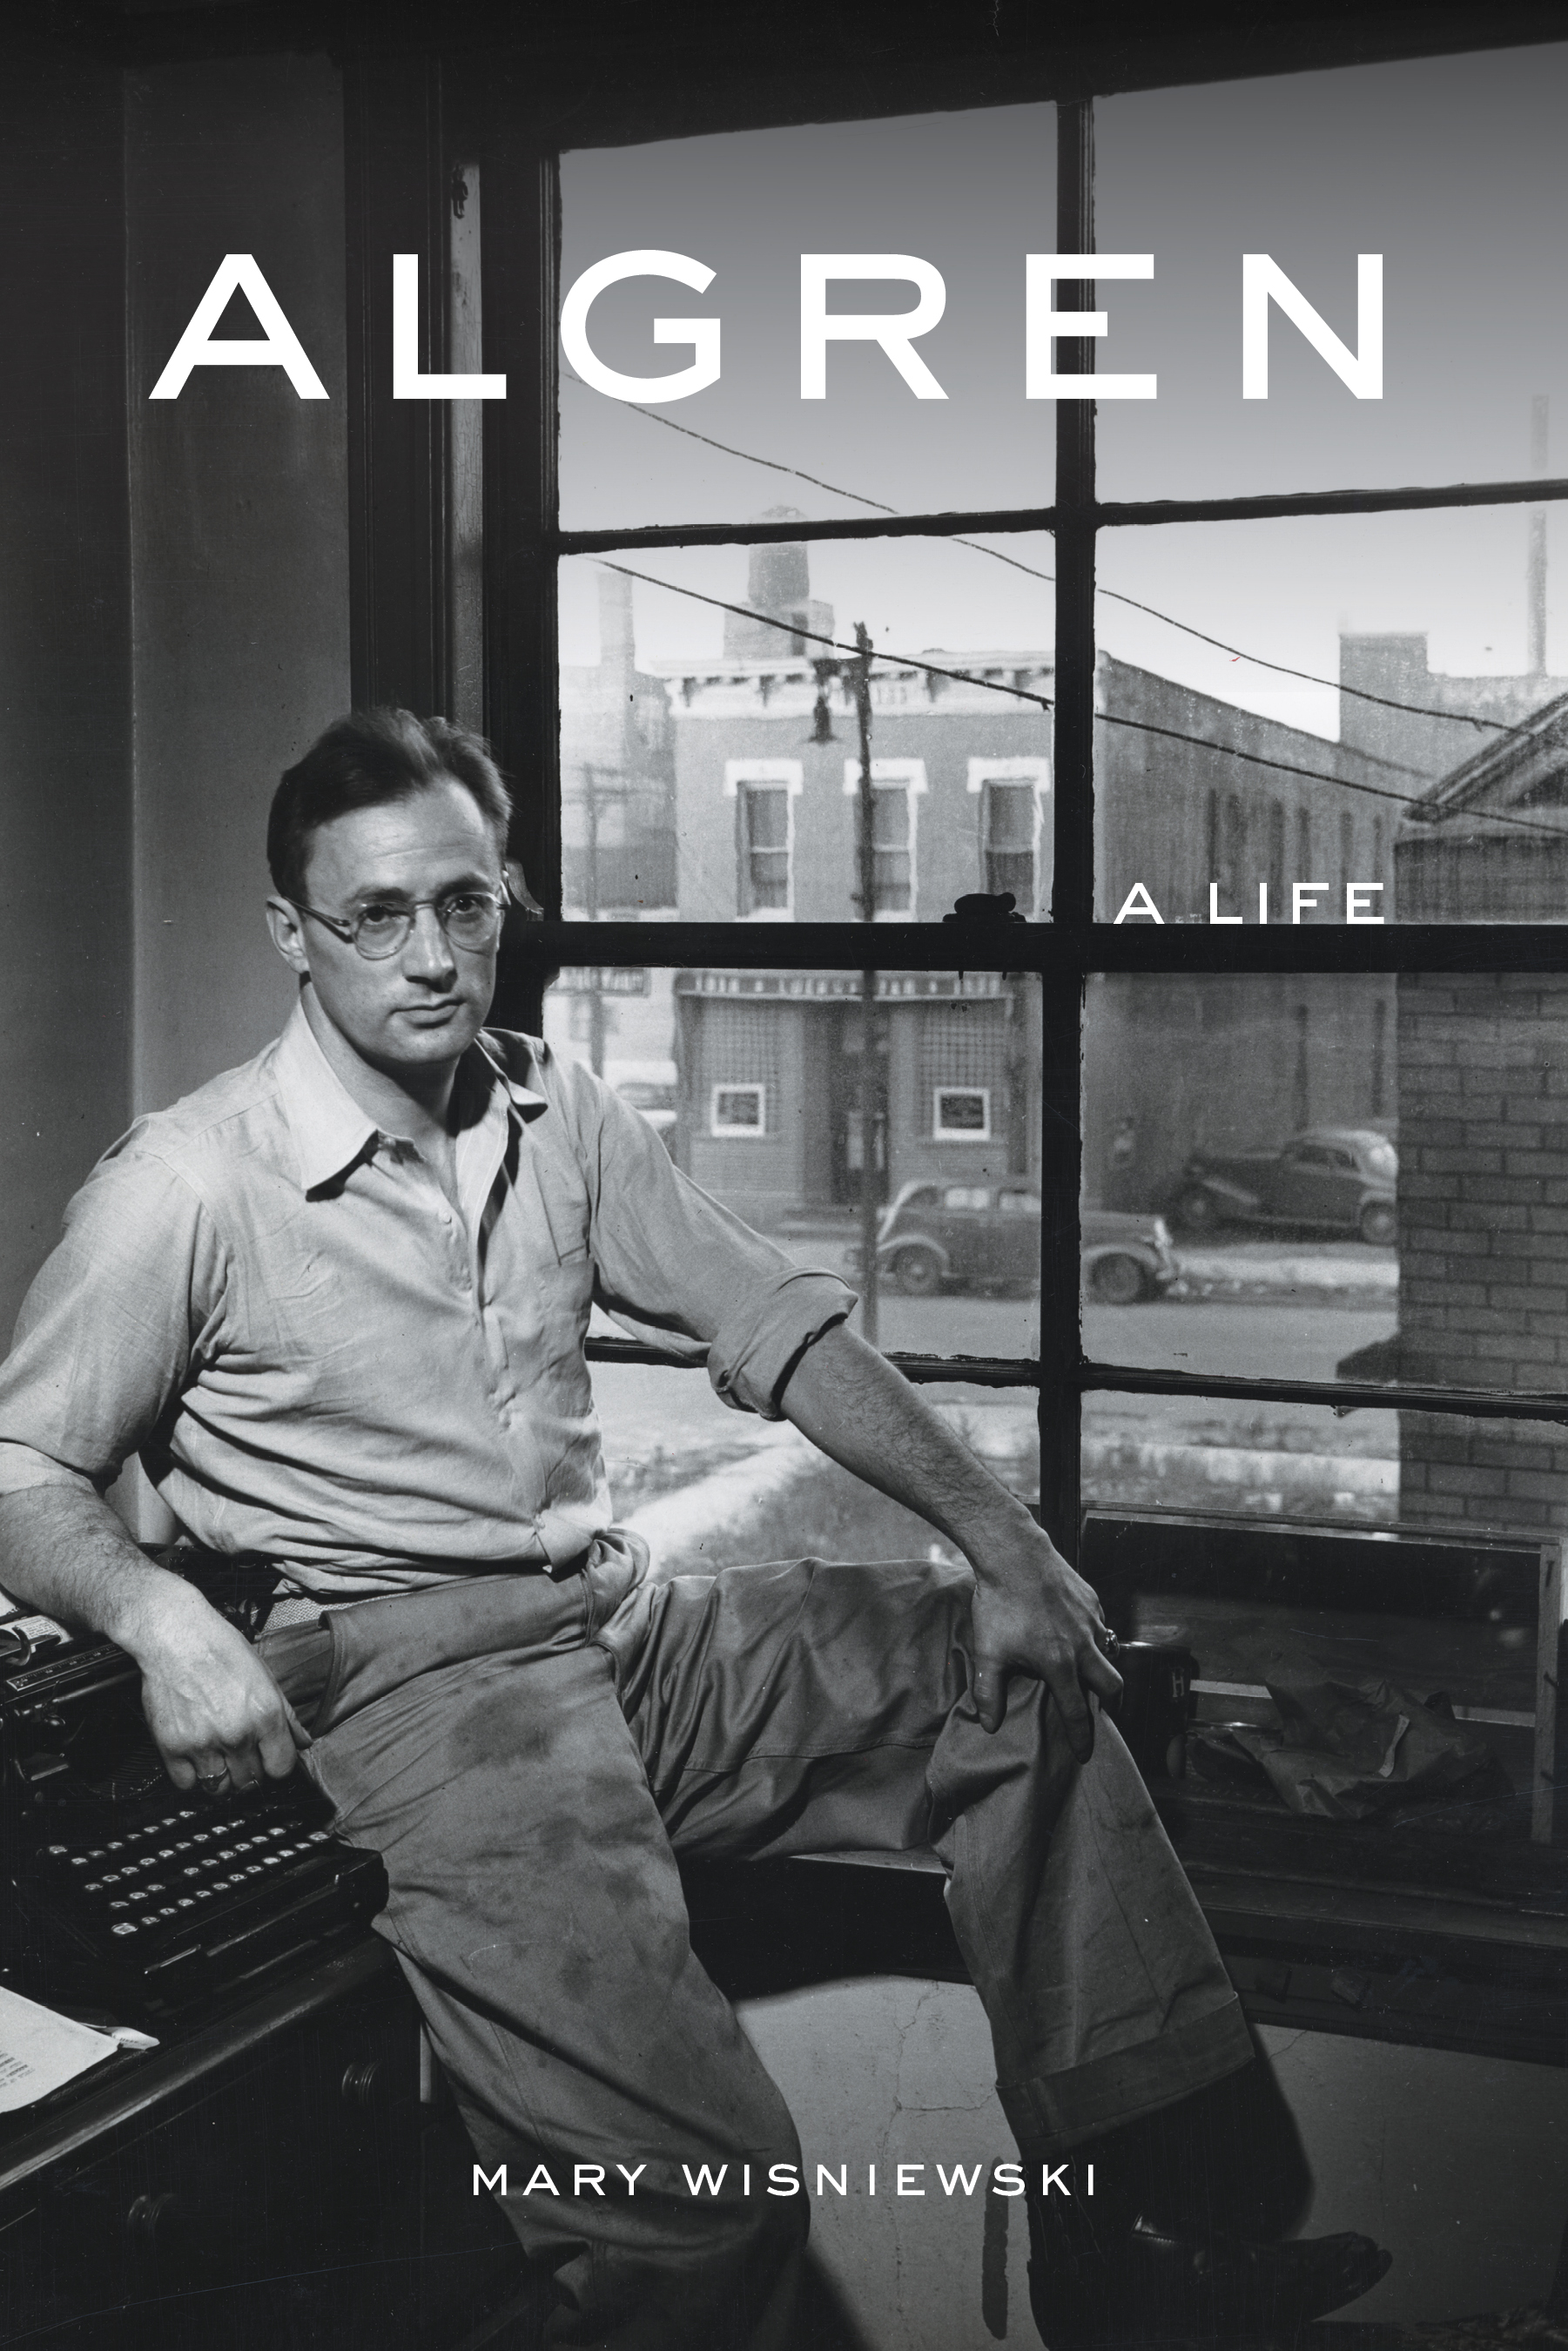 Book review, signing: New book offers fresh take on Gary/Chicago resident, Nelson Algren